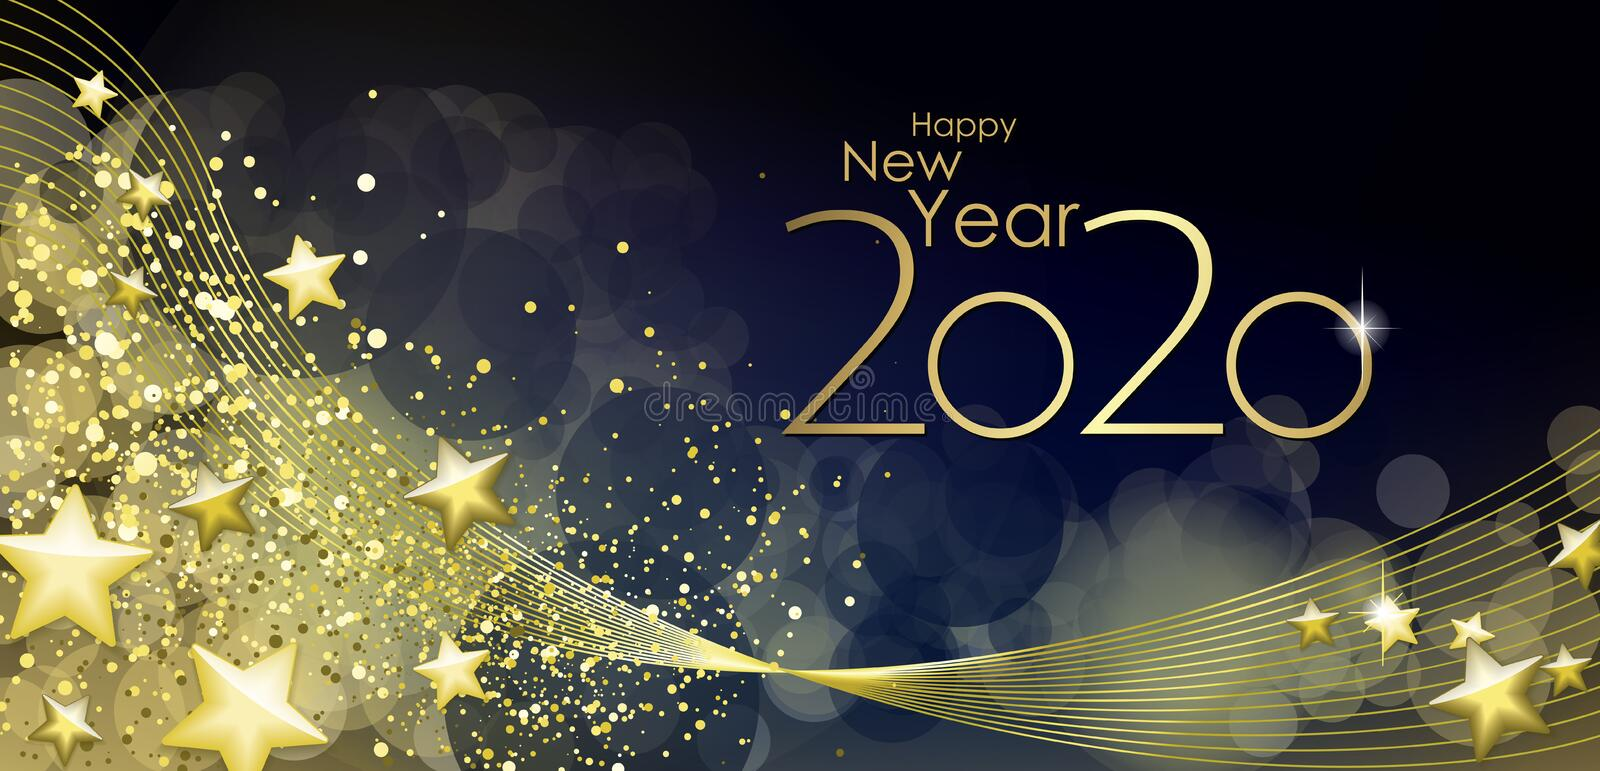 Happy New year 2020 vector illustration